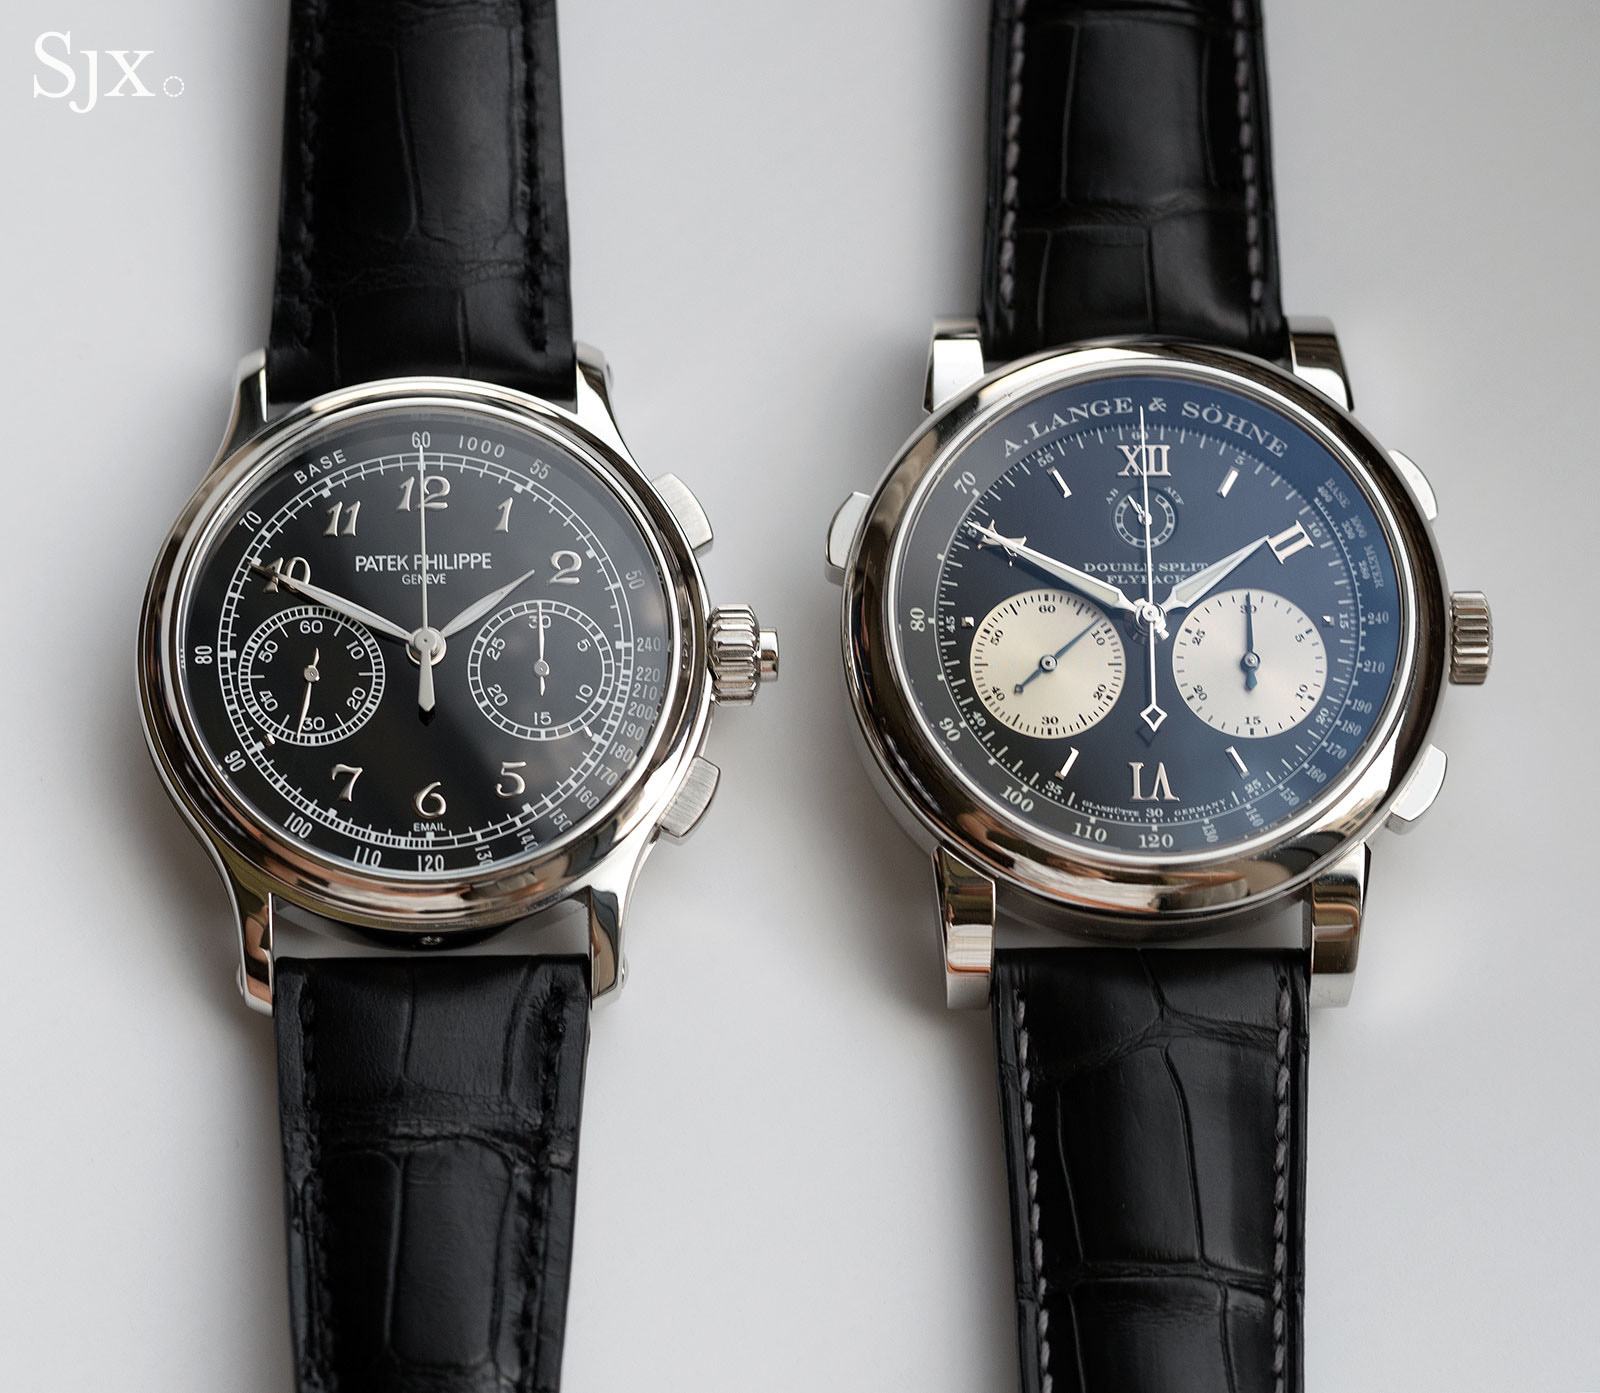 Lange Double Split Patek 5370 comparison 1